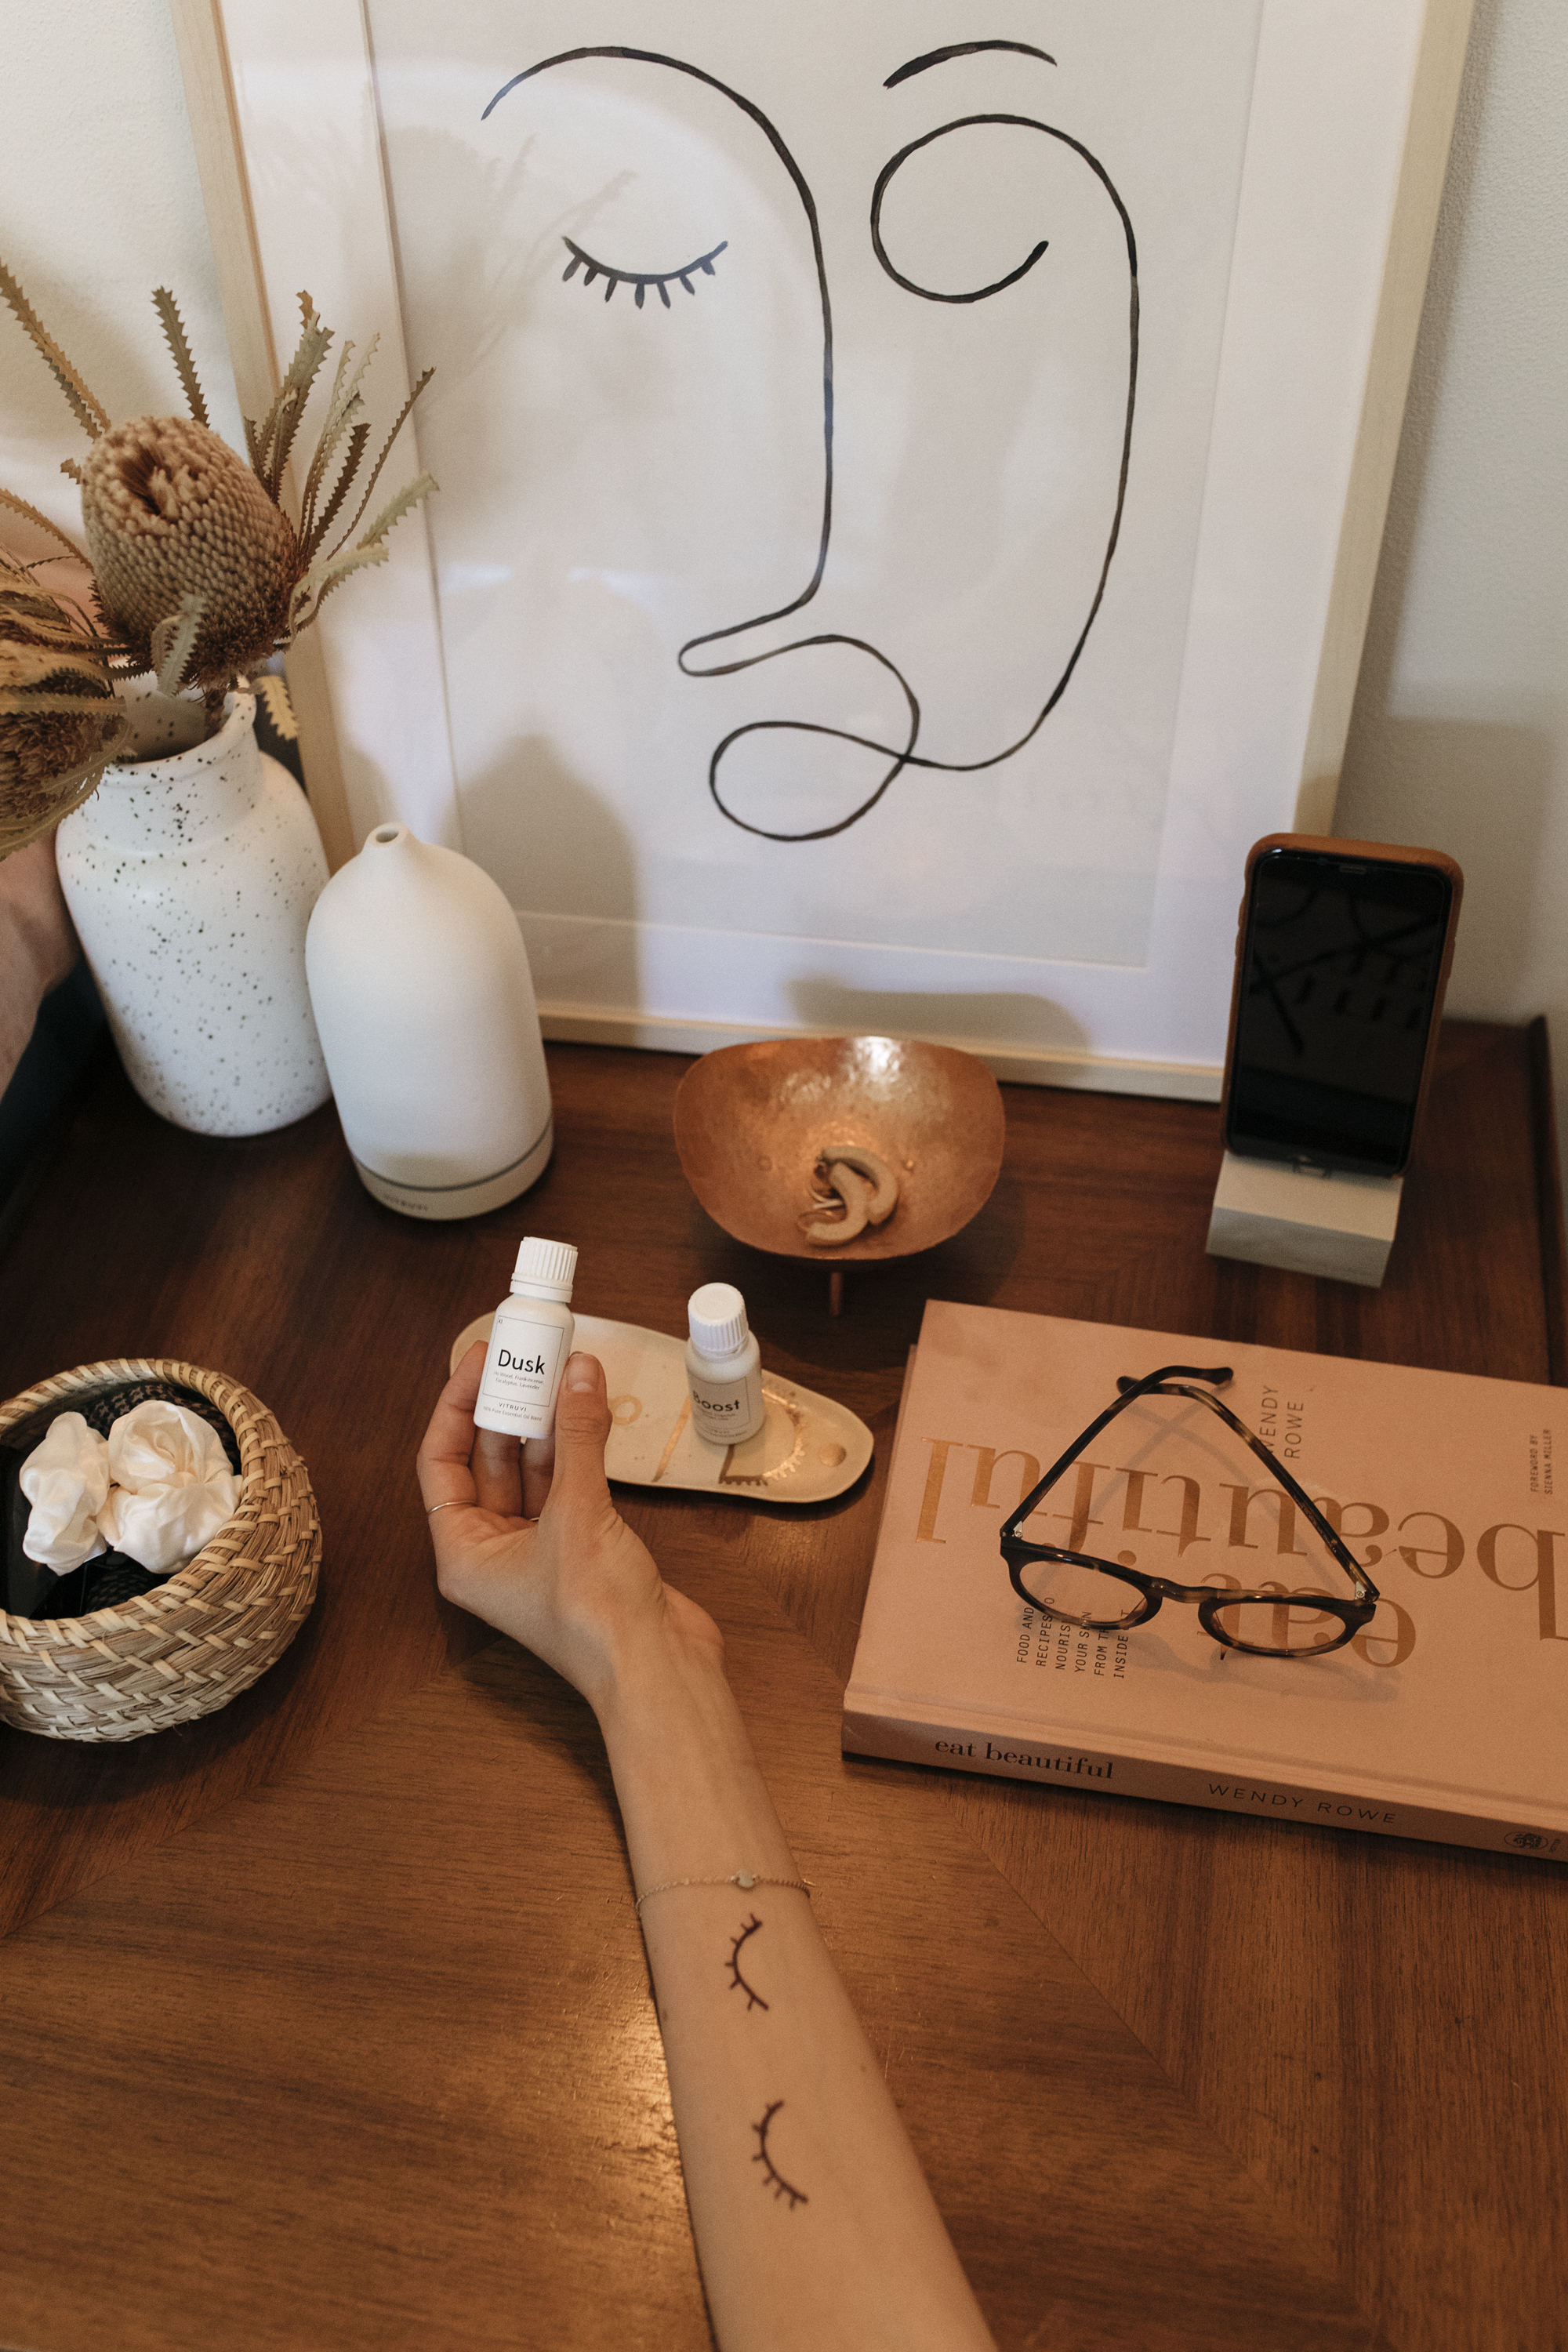 Vitruvi essential oils and Vitruvi diffuser help creative lifestyle blogger, Emily R. Hess, relax at night after work